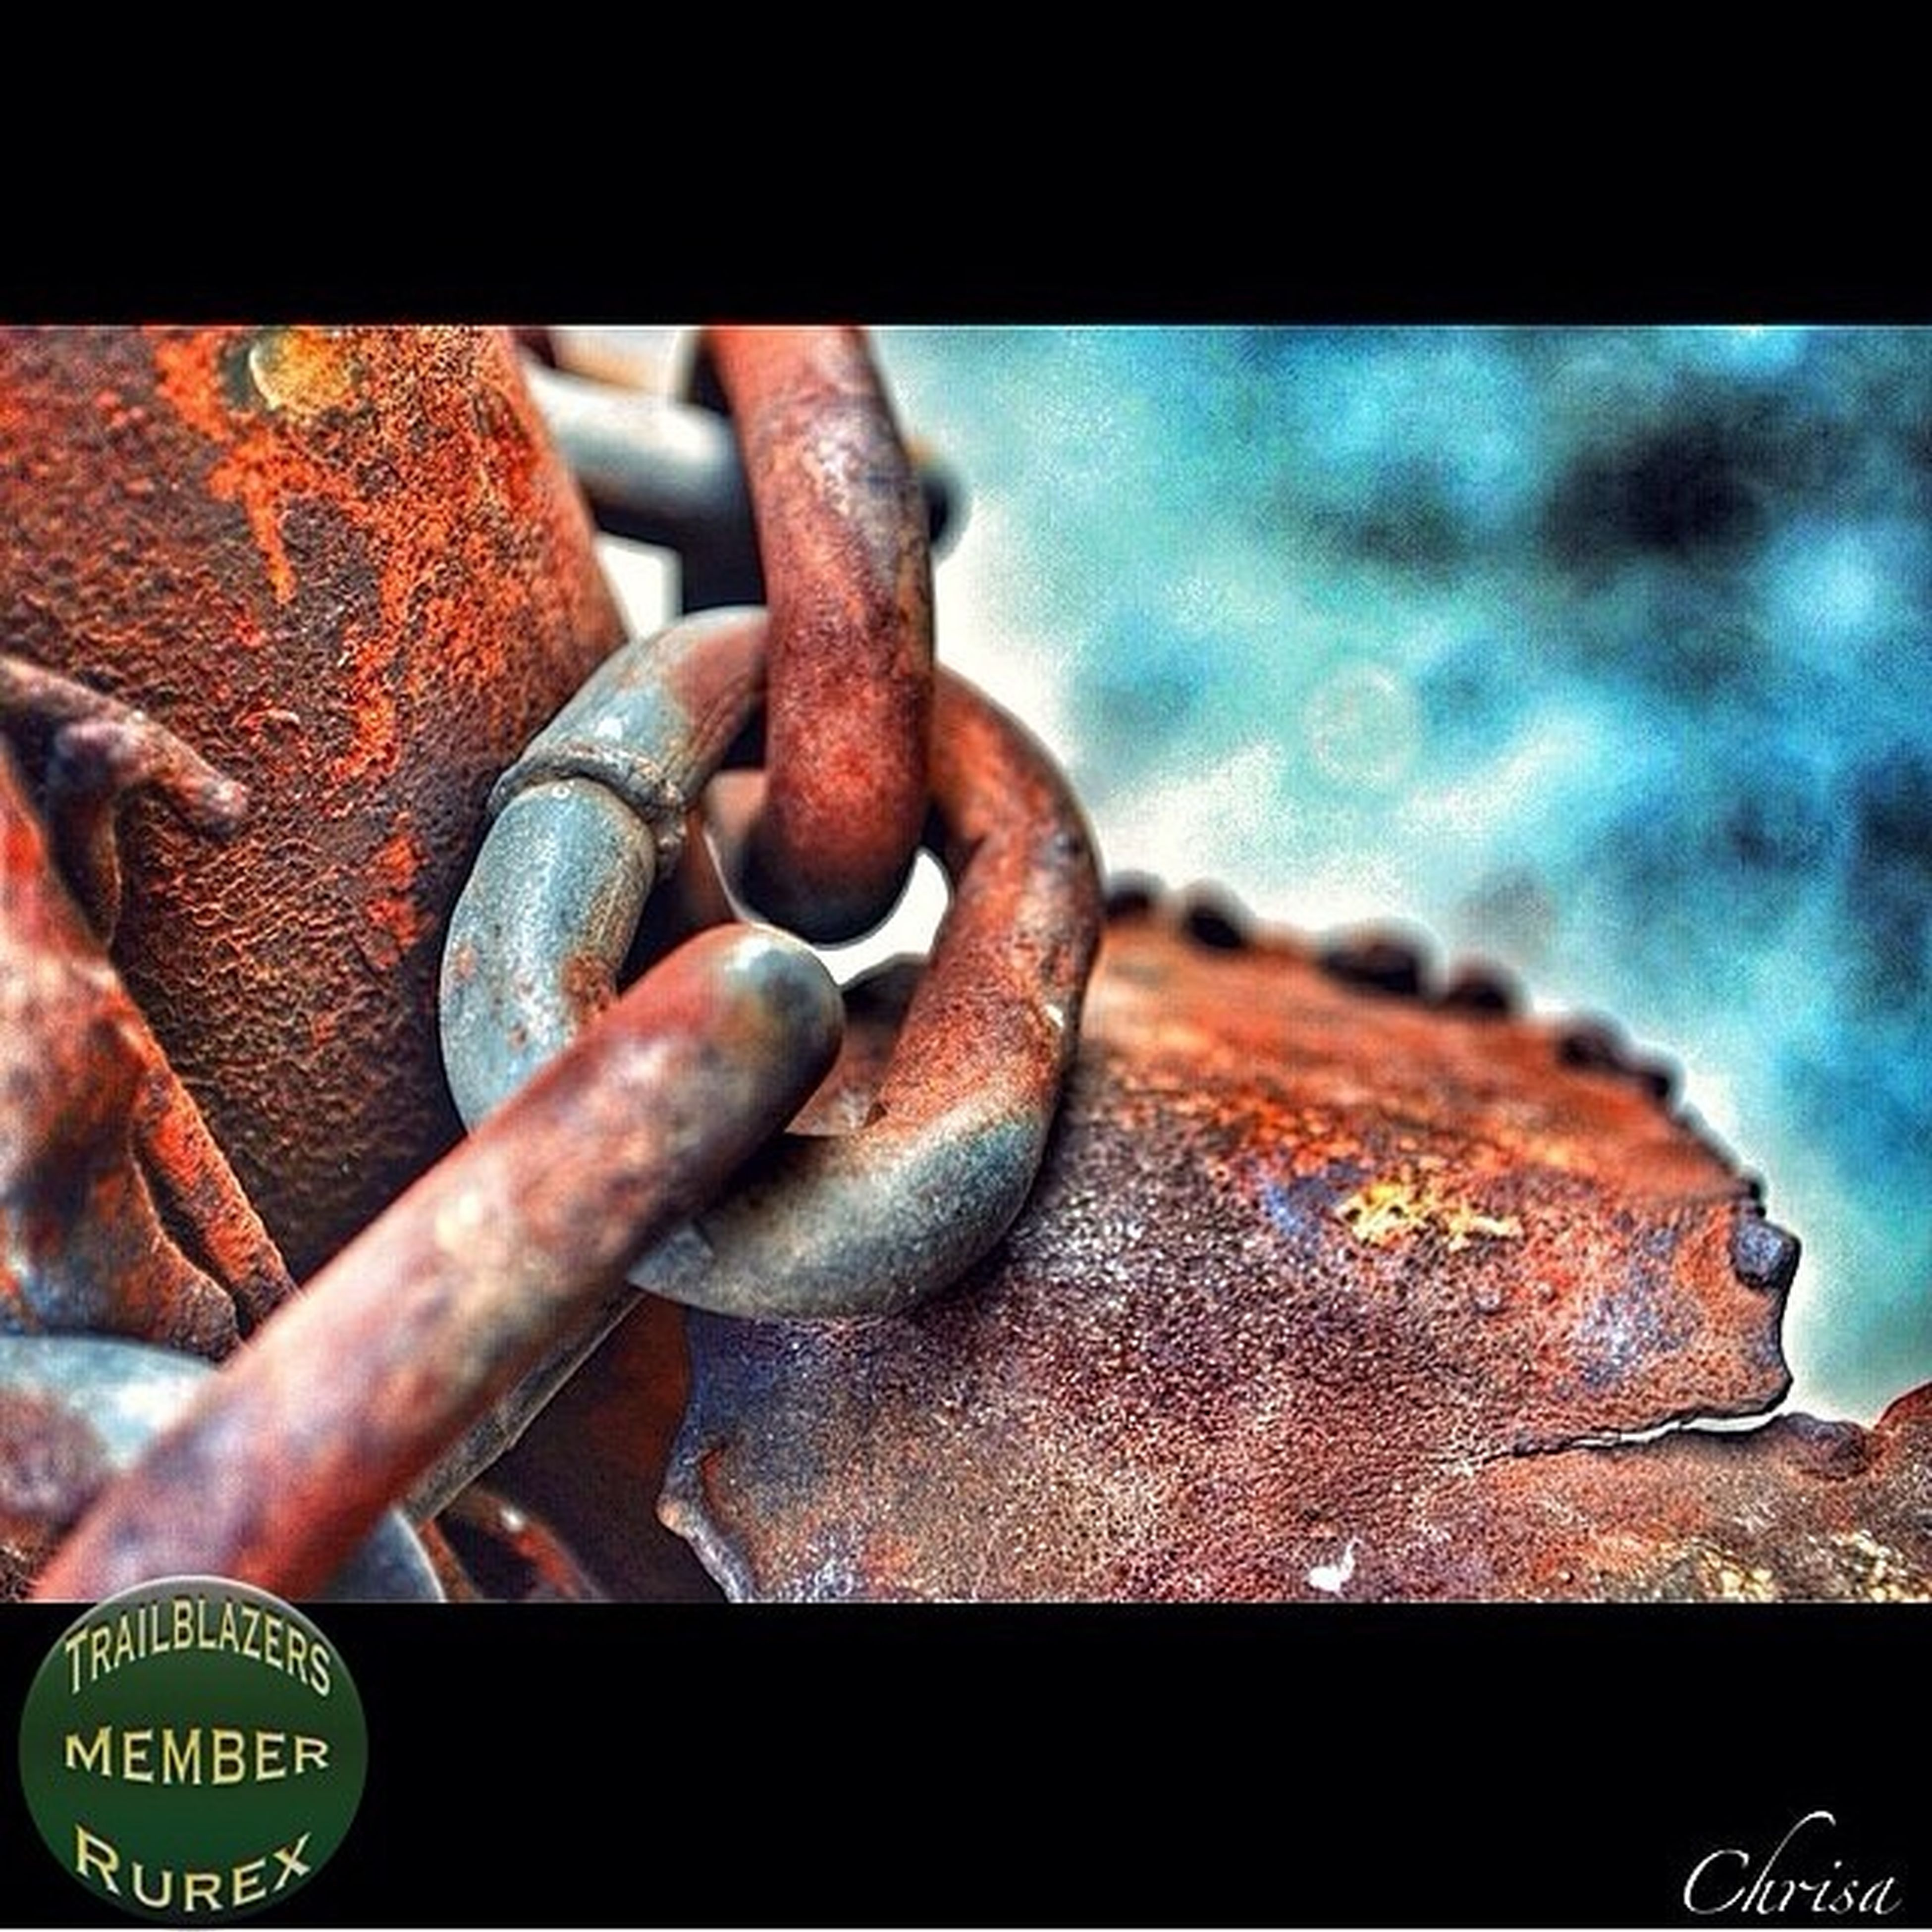 metal, rusty, close-up, metallic, focus on foreground, chain, old, padlock, part of, weathered, deterioration, connection, outdoors, strength, day, safety, protection, selective focus, detail, damaged